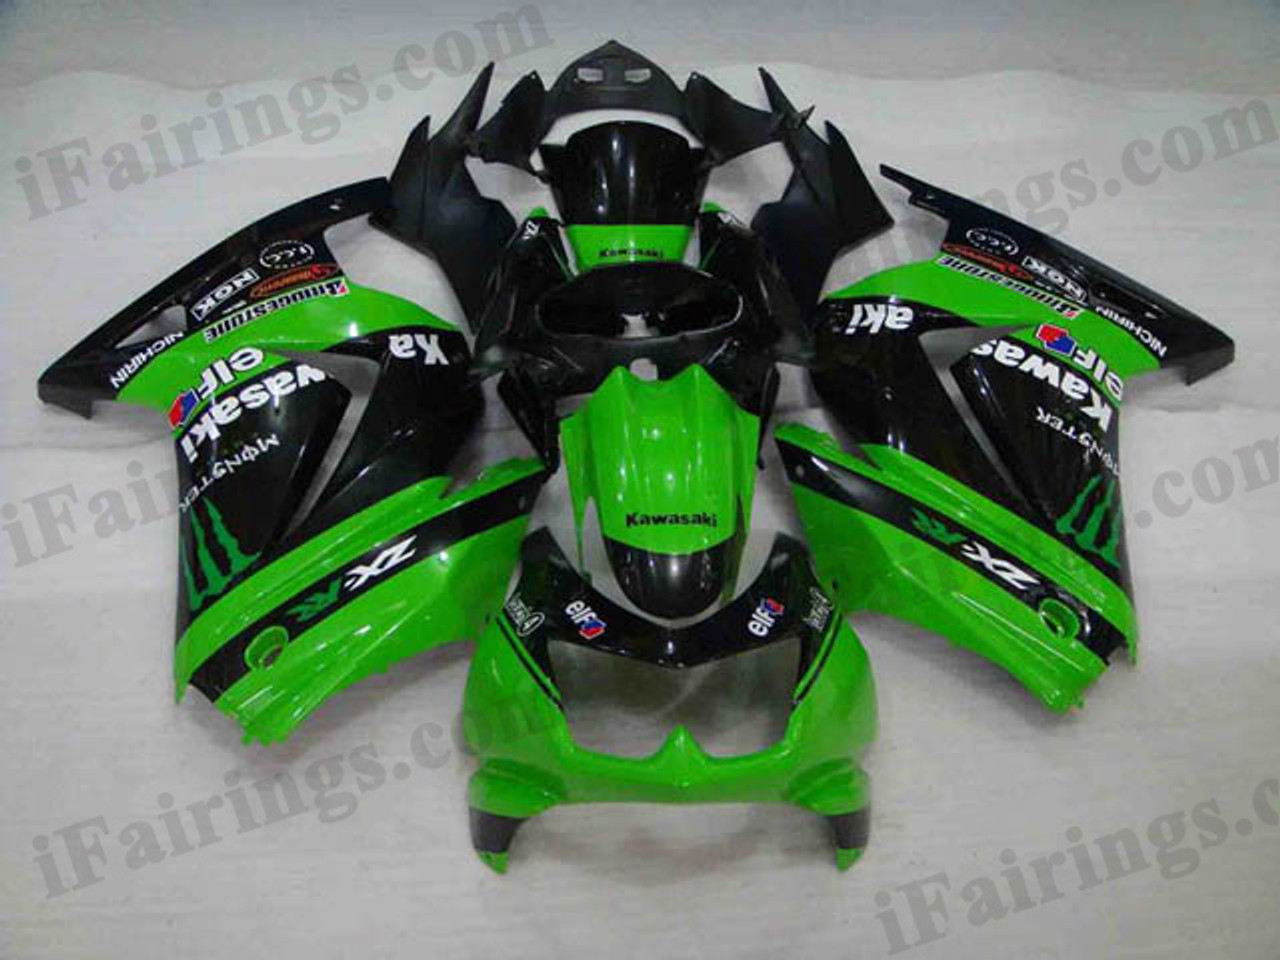 2008 To 2012 Ninja 250r Monster Replacement Fairing Kits